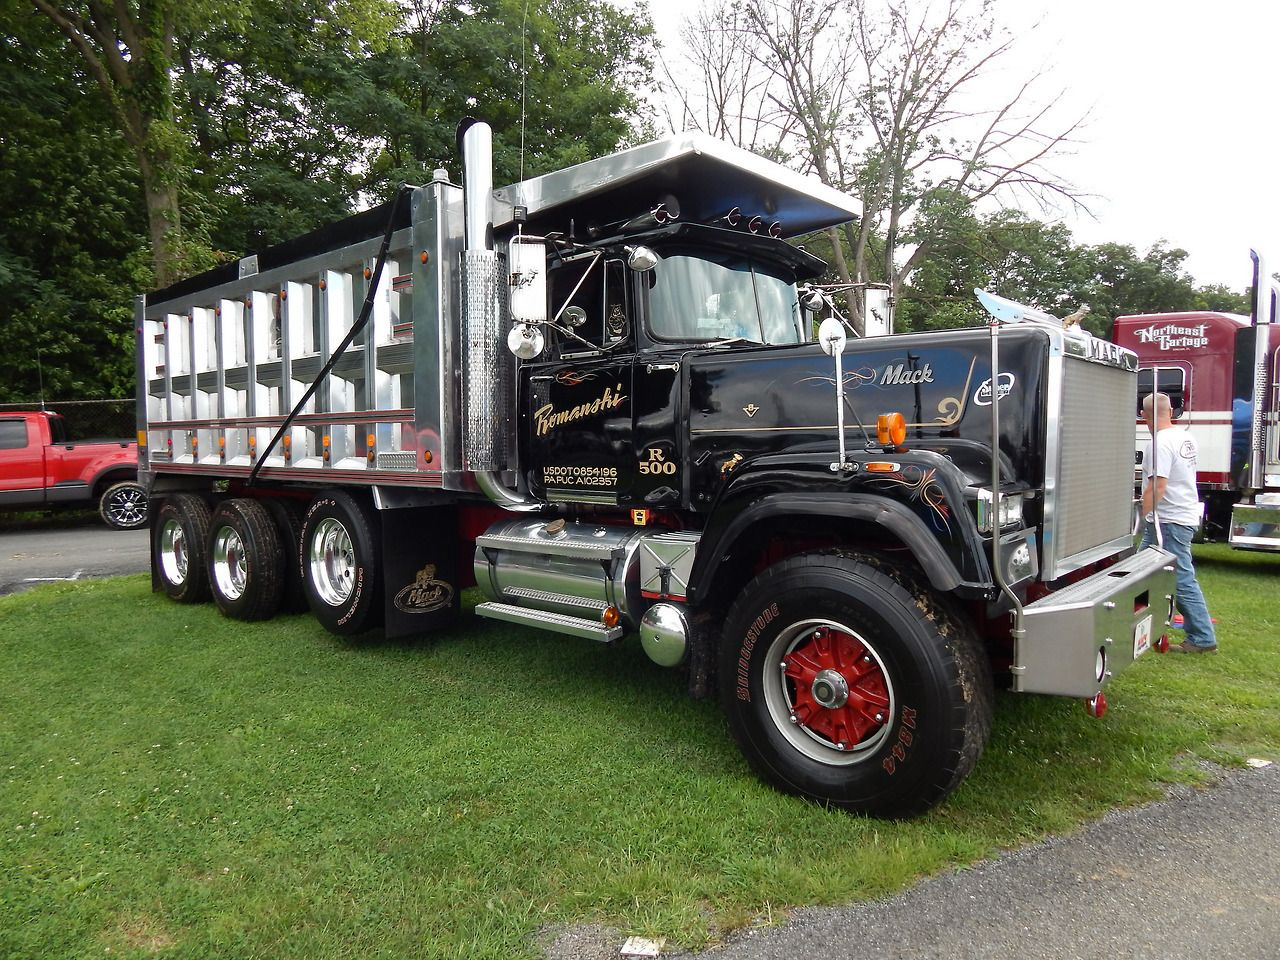 Mack Tri Axle Tractors : Mack superliner custom tri axle dump trucks pinterest